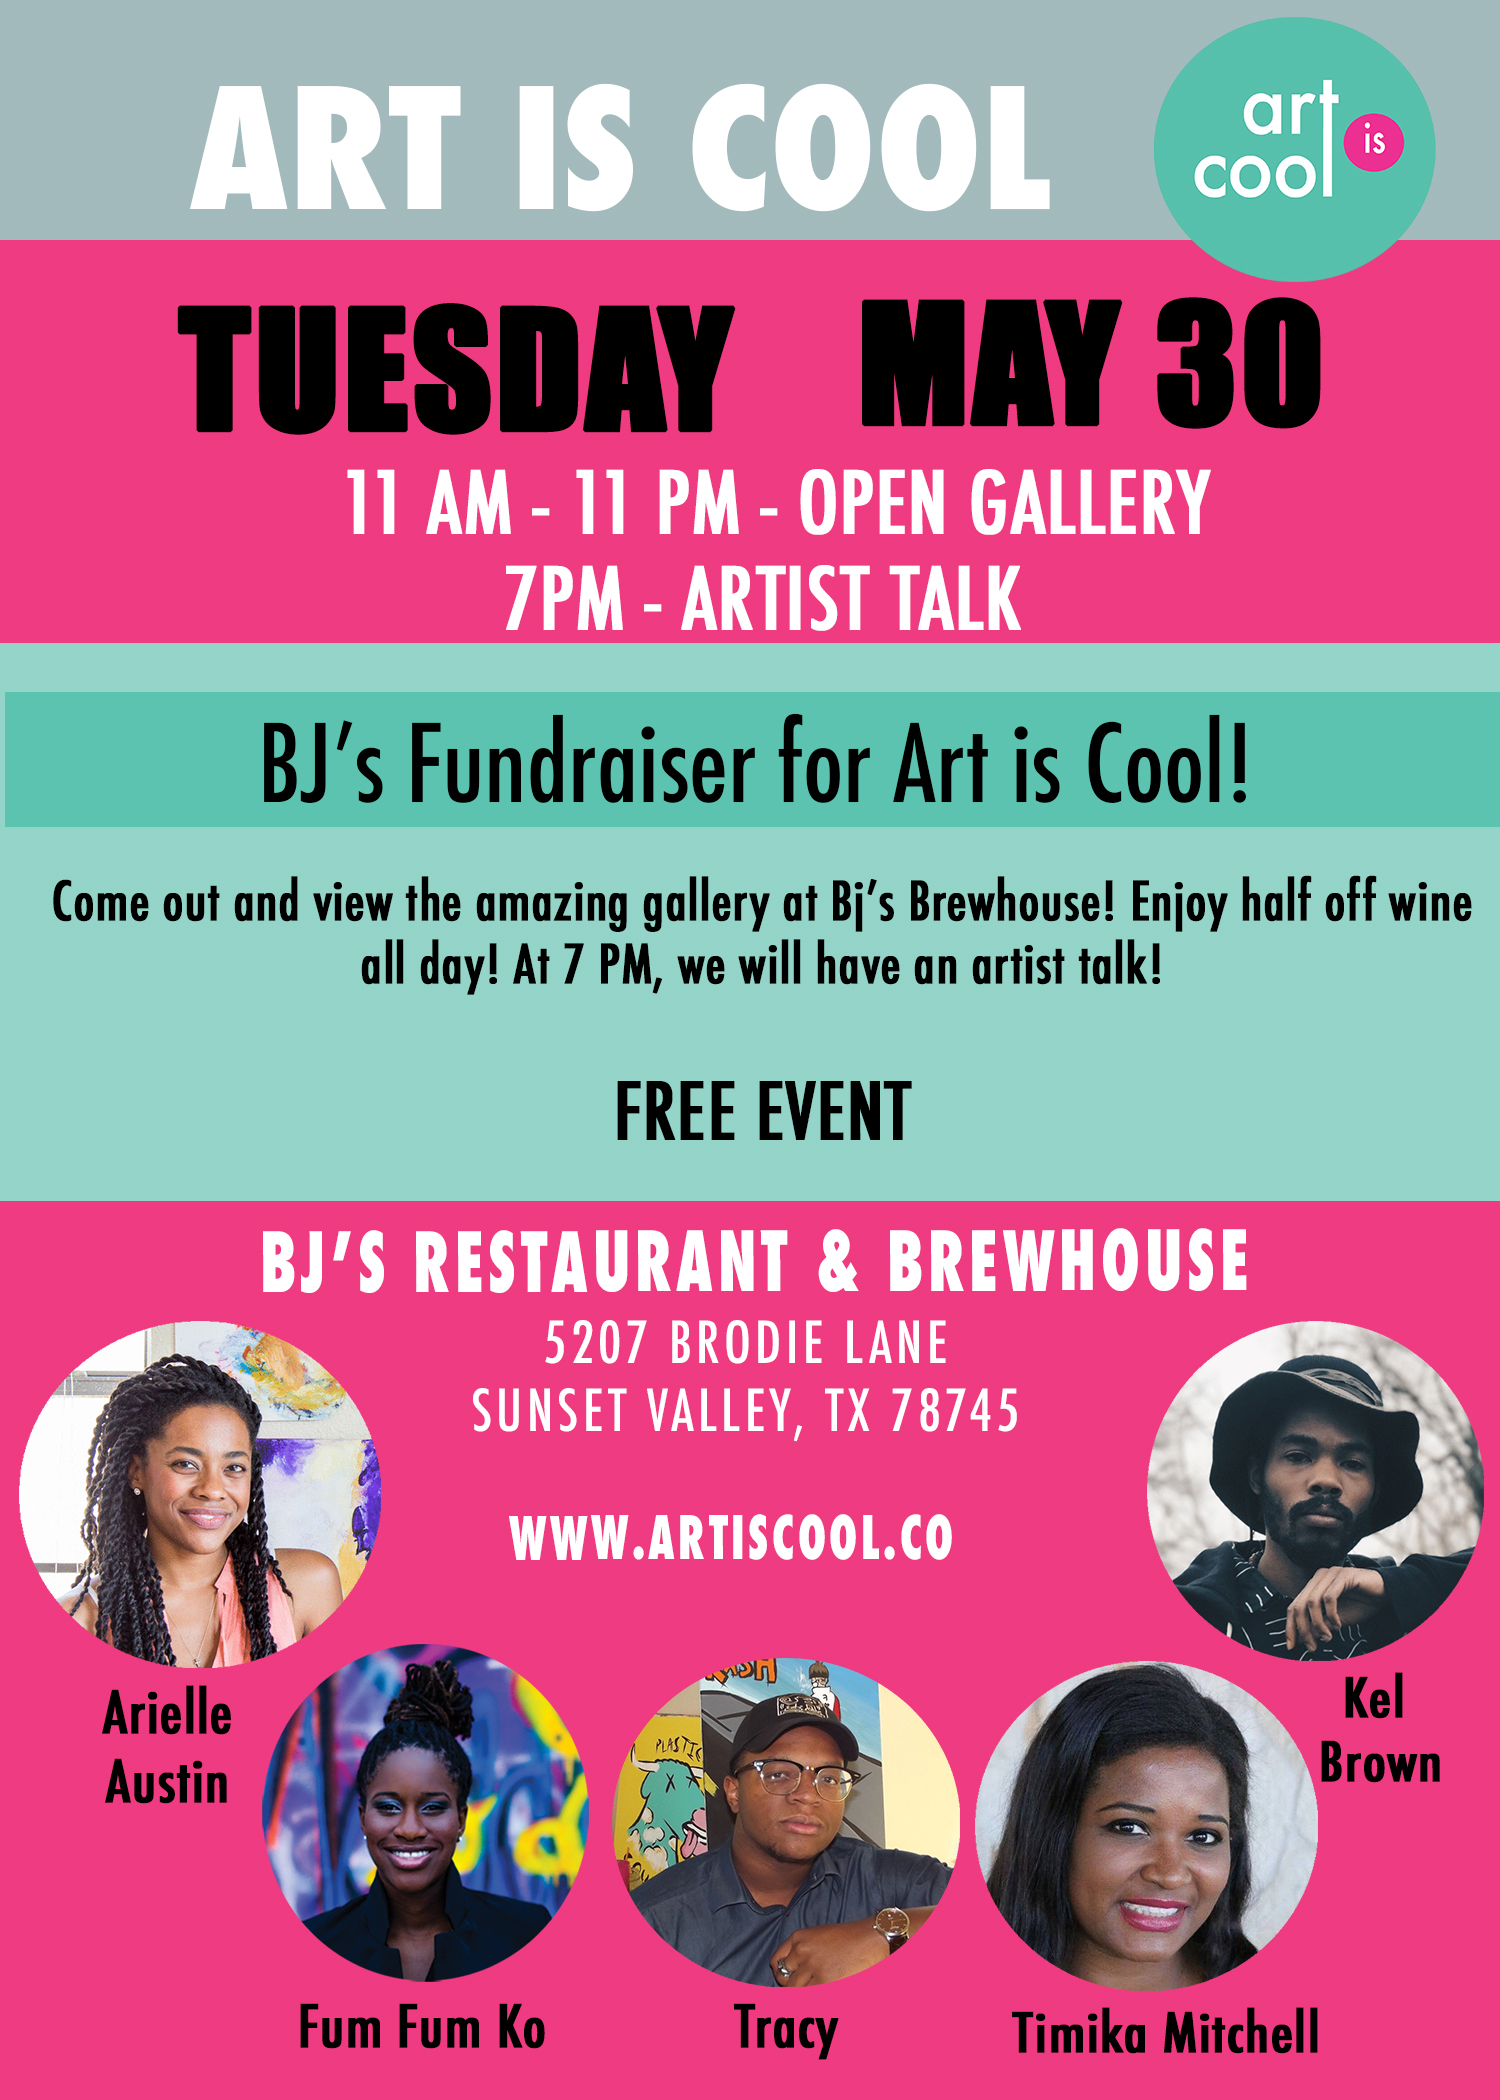 Art is Cool and BJ's Brewhouse: May 30th 11 AM - 11 PM (Open Gallery). At 7 PM we will have an artist talk.